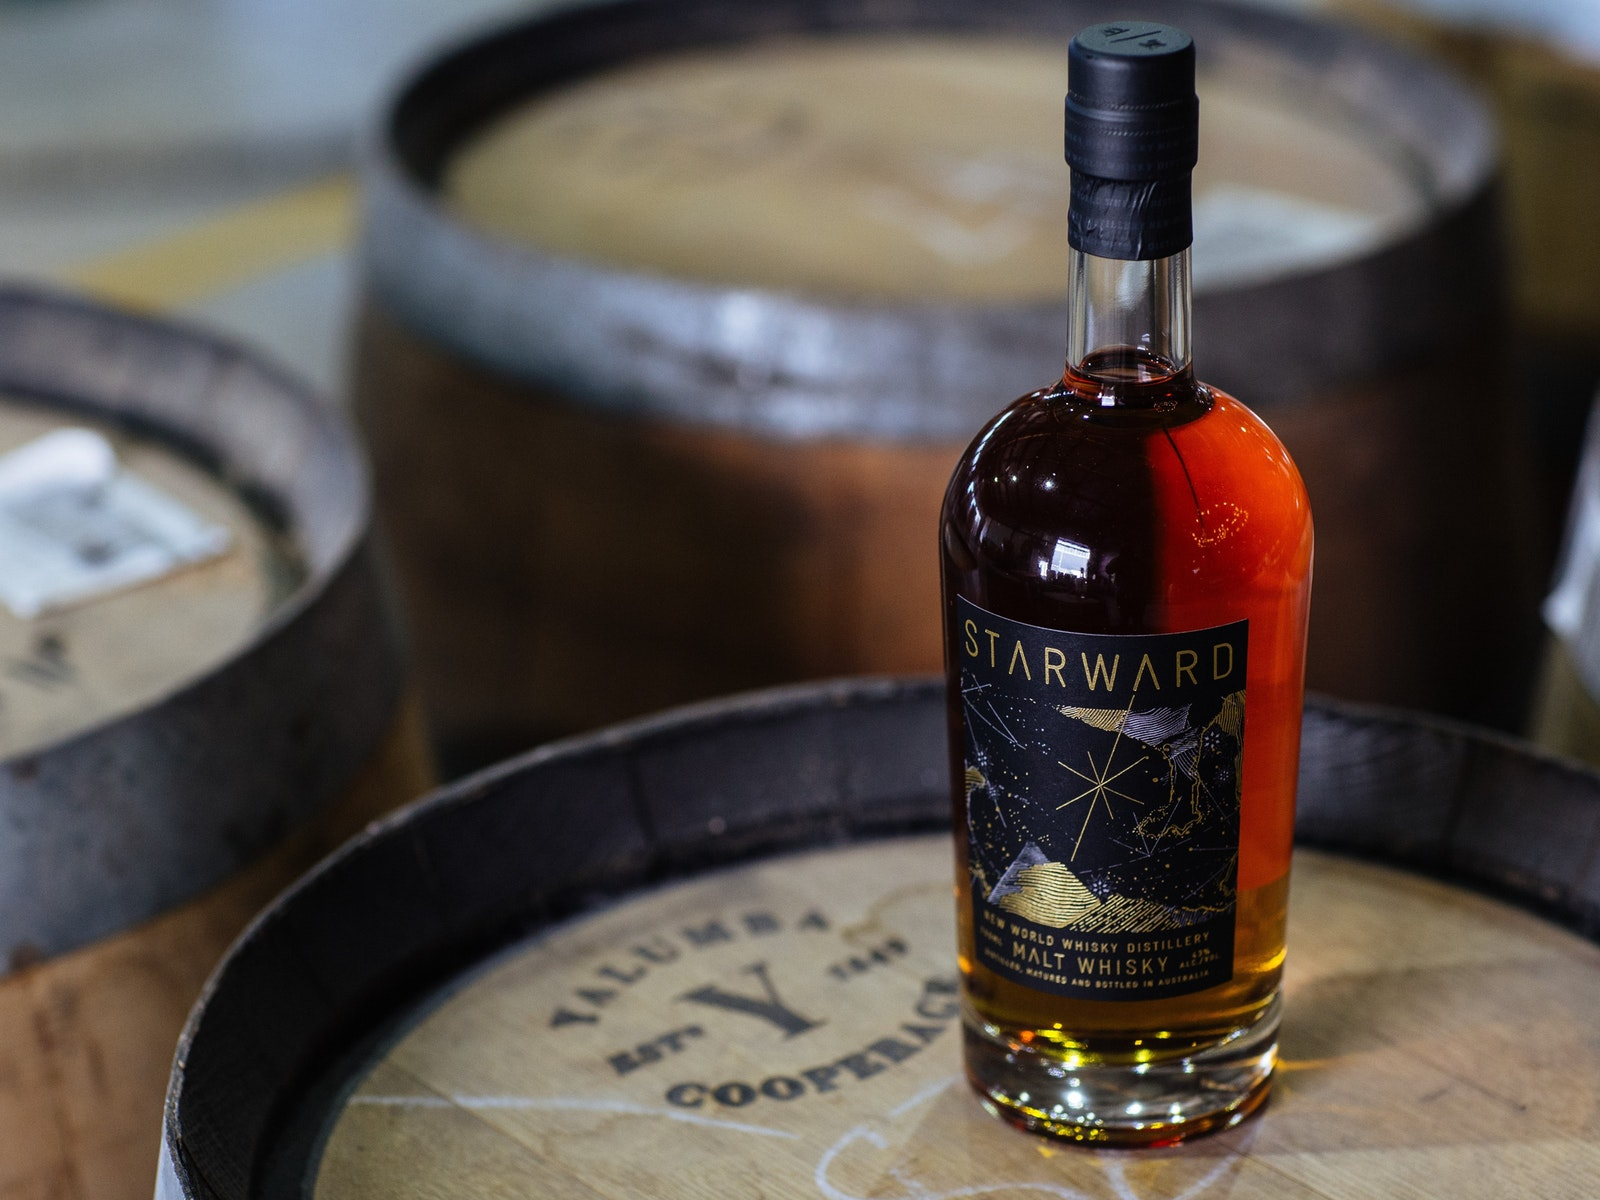 STARWARD Australian Single Malt Whisky